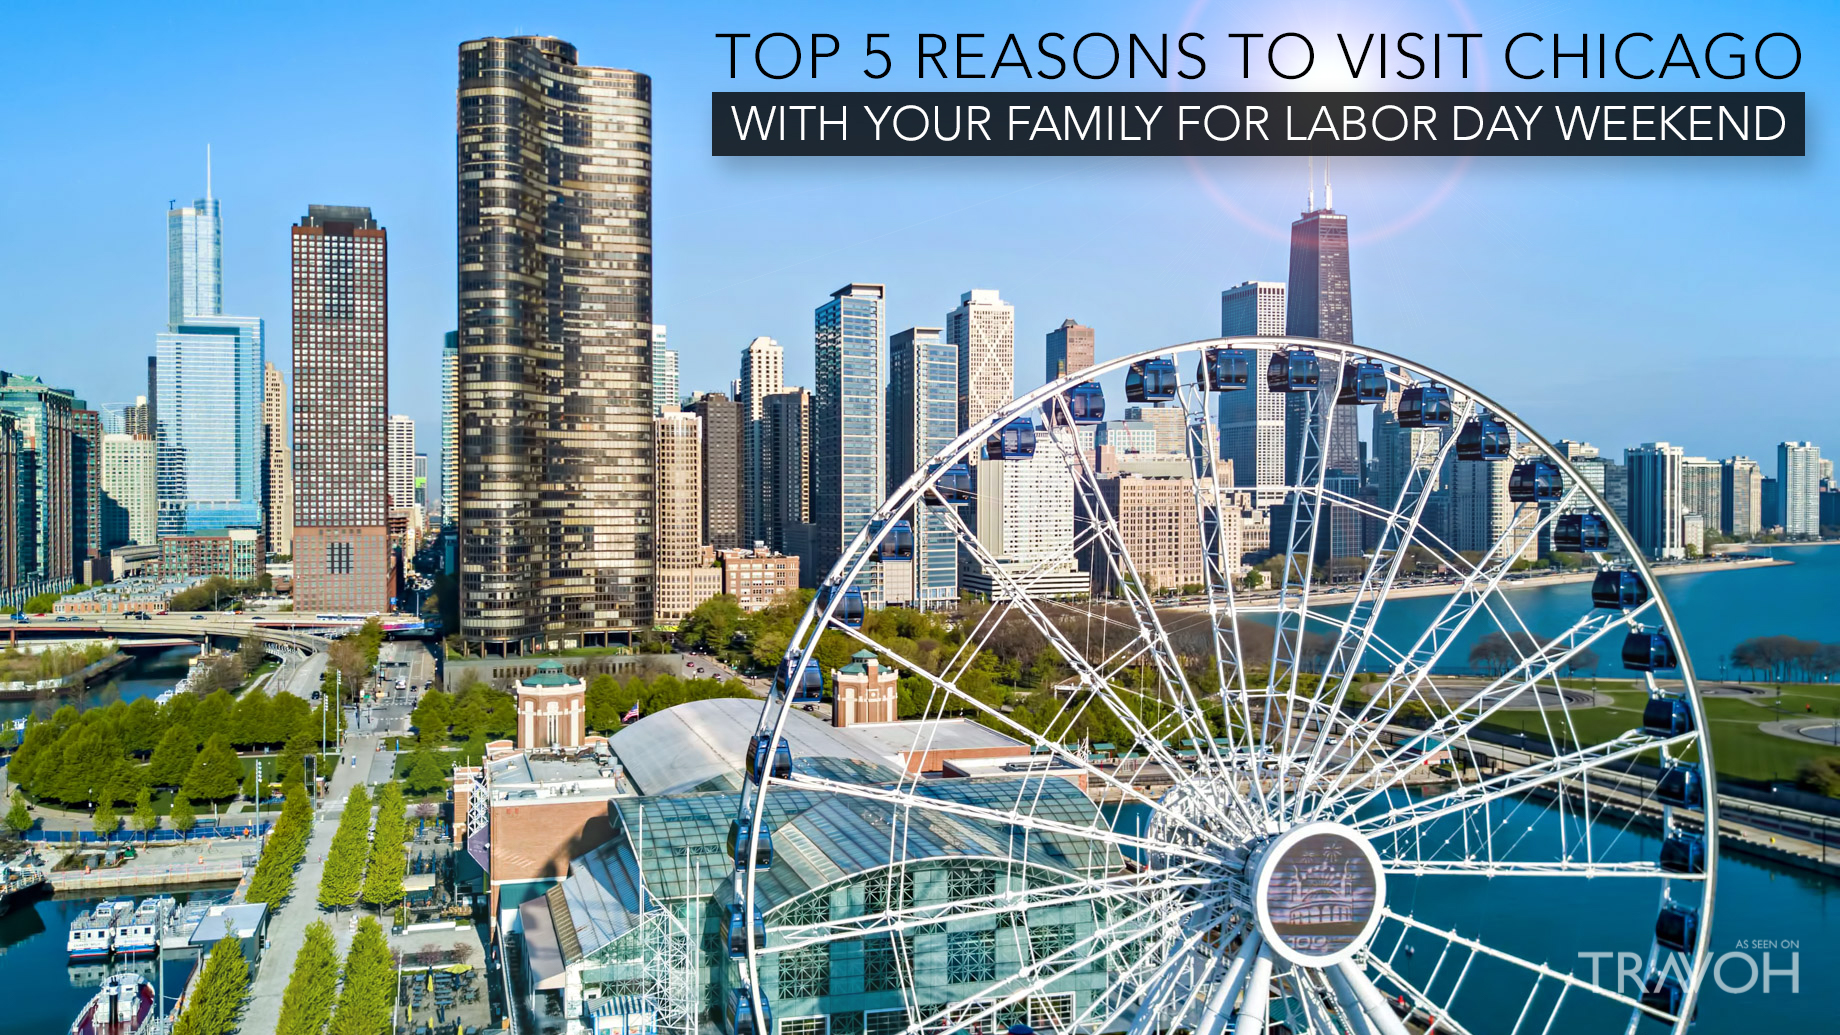 Top 5 Reasons to Visit Chicago With Your Family for Labor Day Weekend